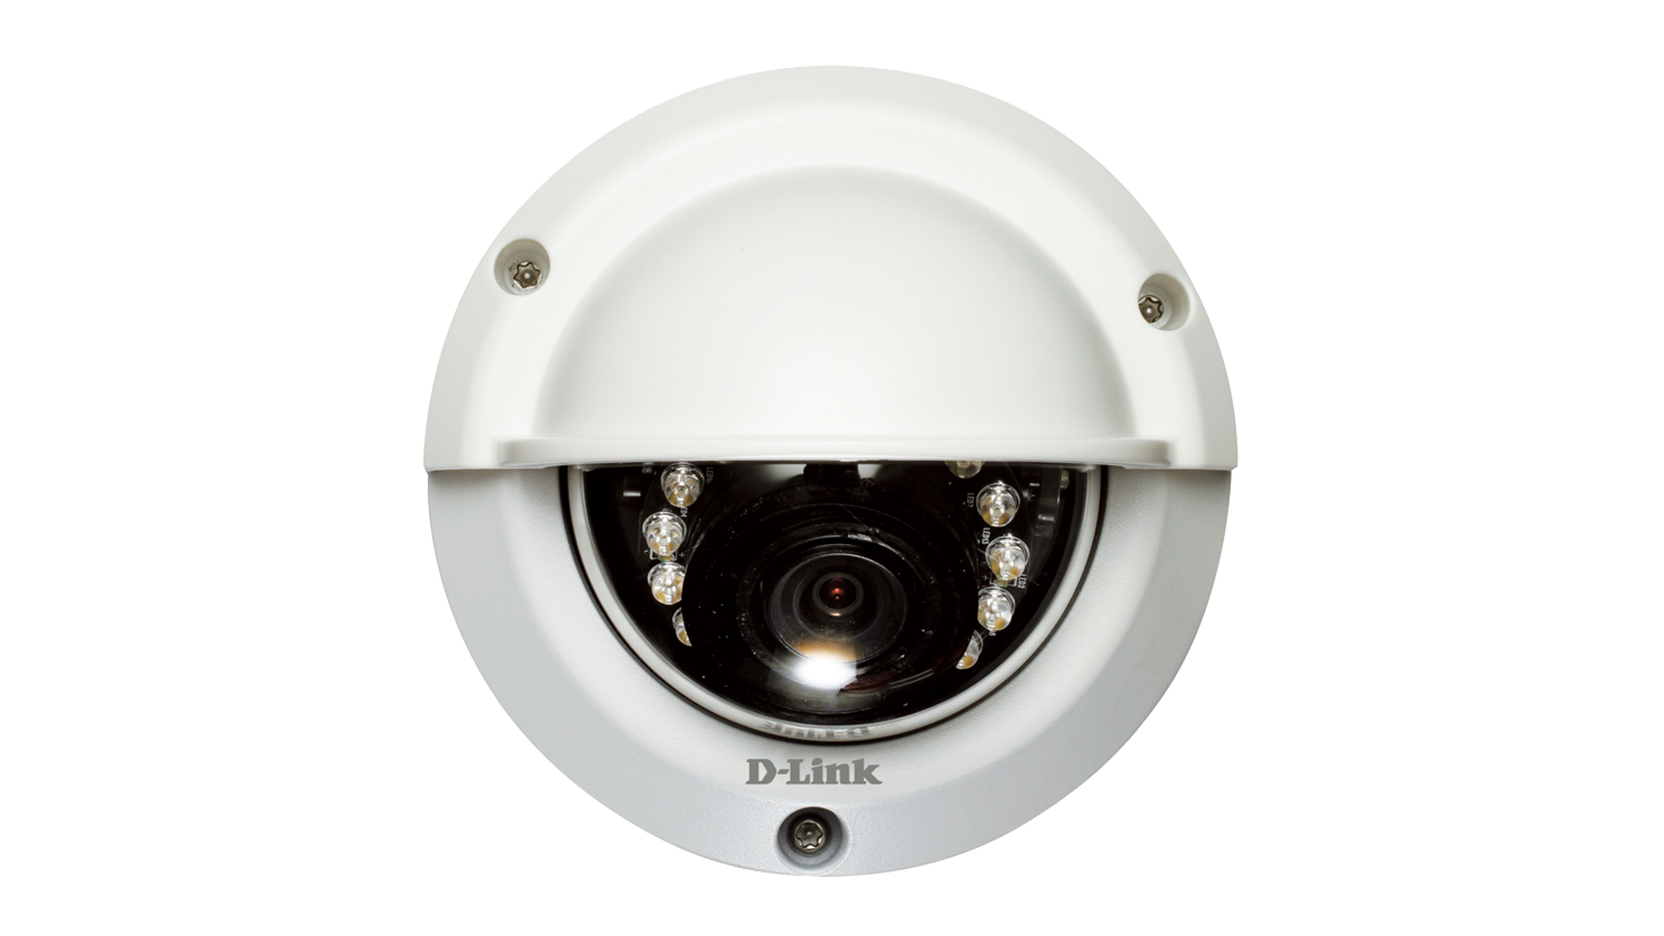 D-LINK DCS-6315 IP CAMERA DRIVERS FOR WINDOWS VISTA